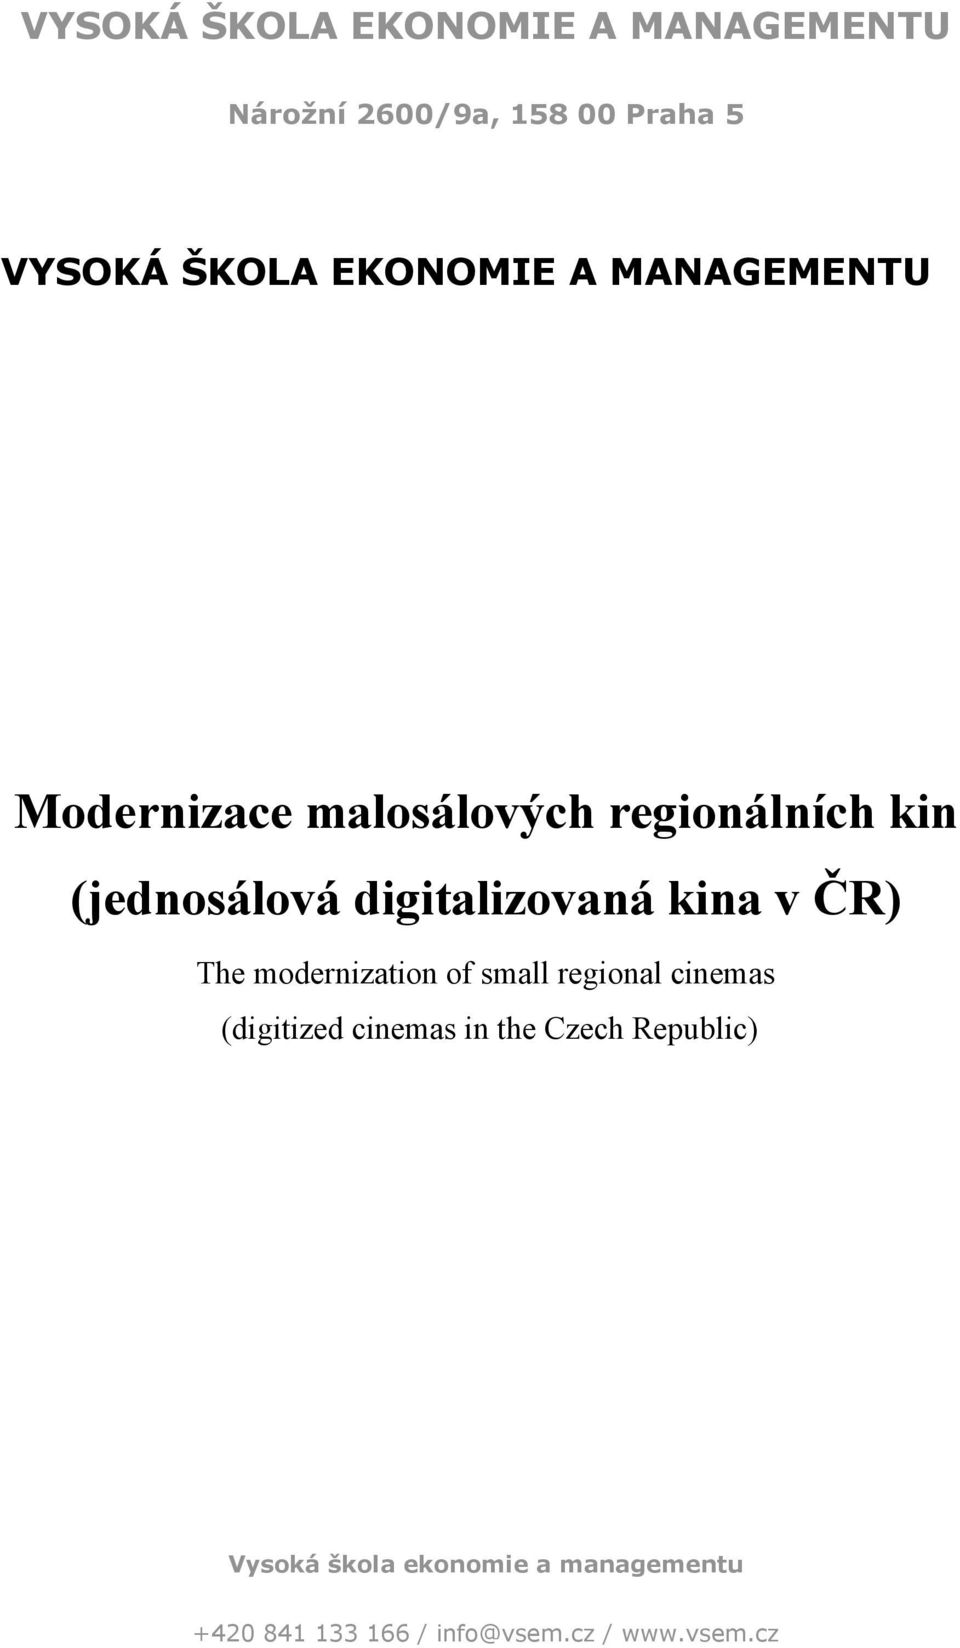 modernization of small regional cinemas (digitized cinemas in the